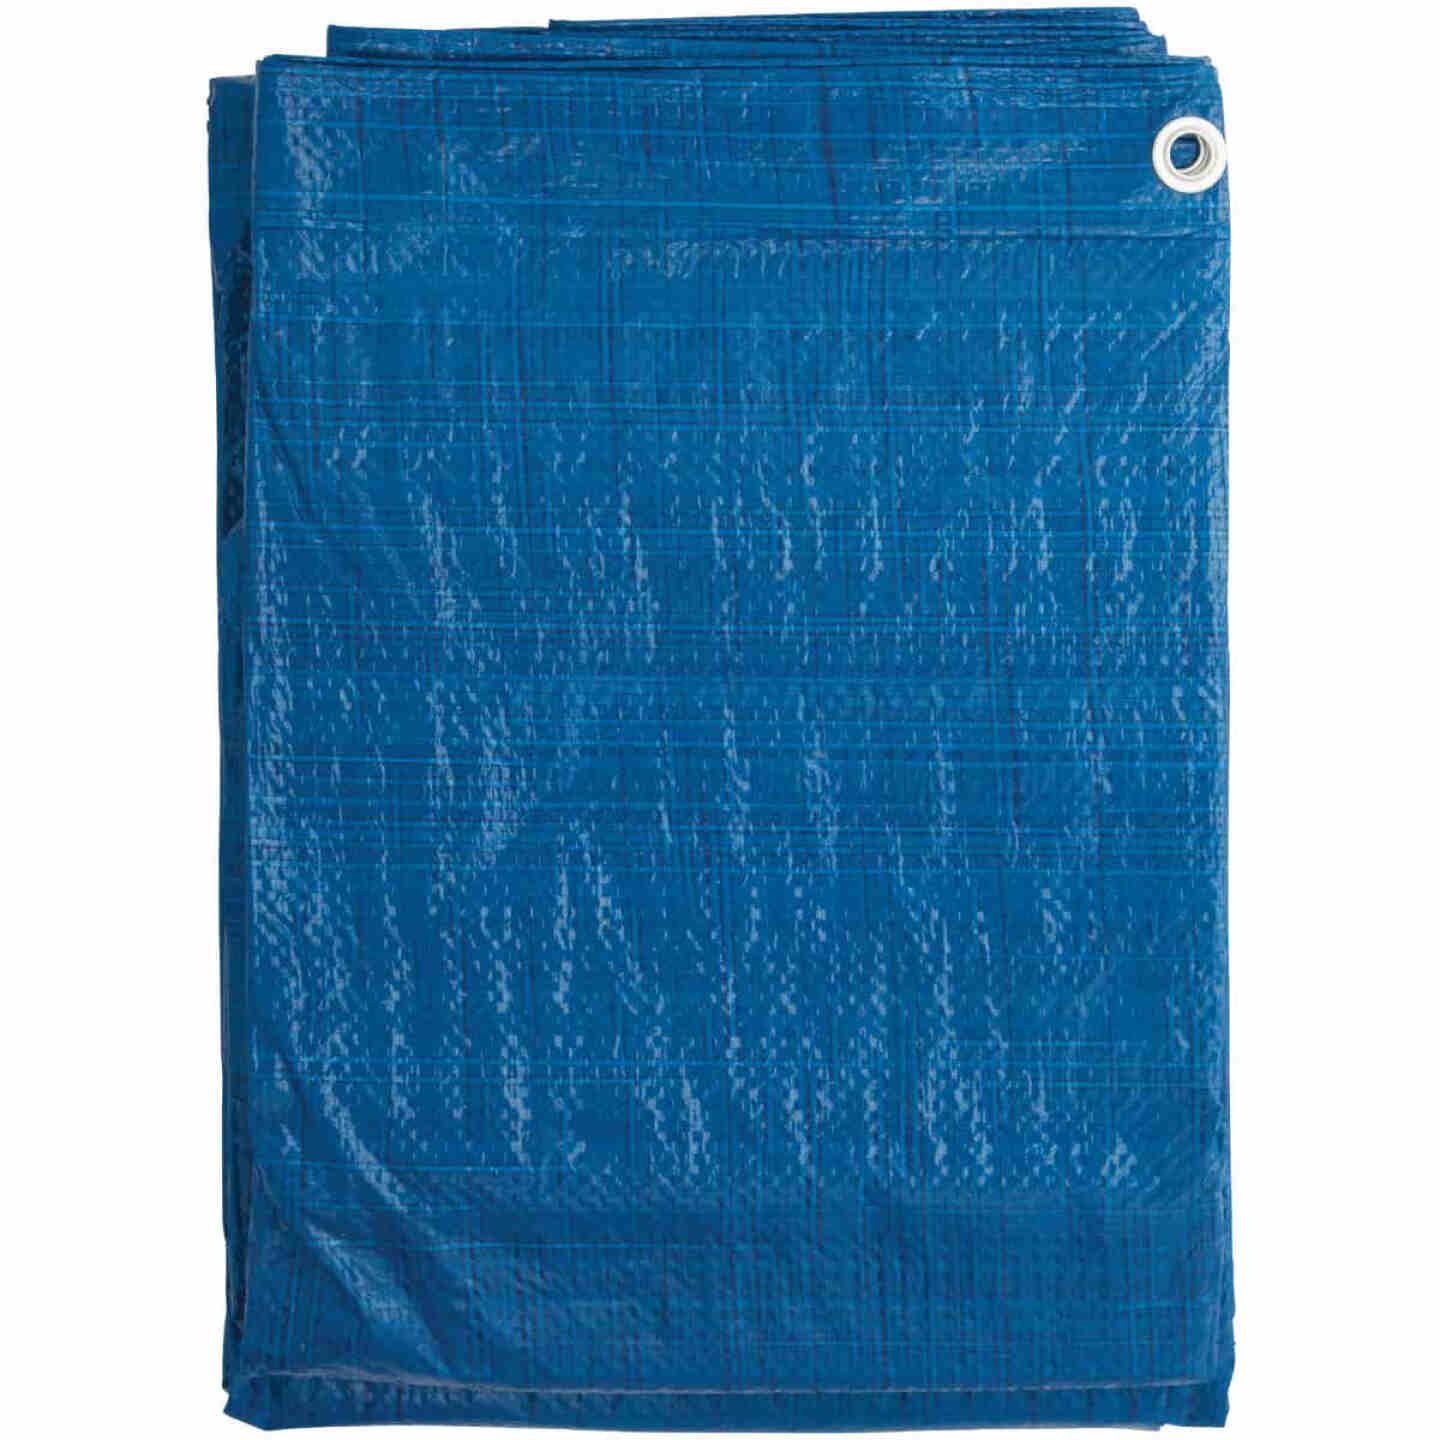 Do it Best Blue Woven 10 Ft. x 18 Ft. General Purpose Tarp Image 2